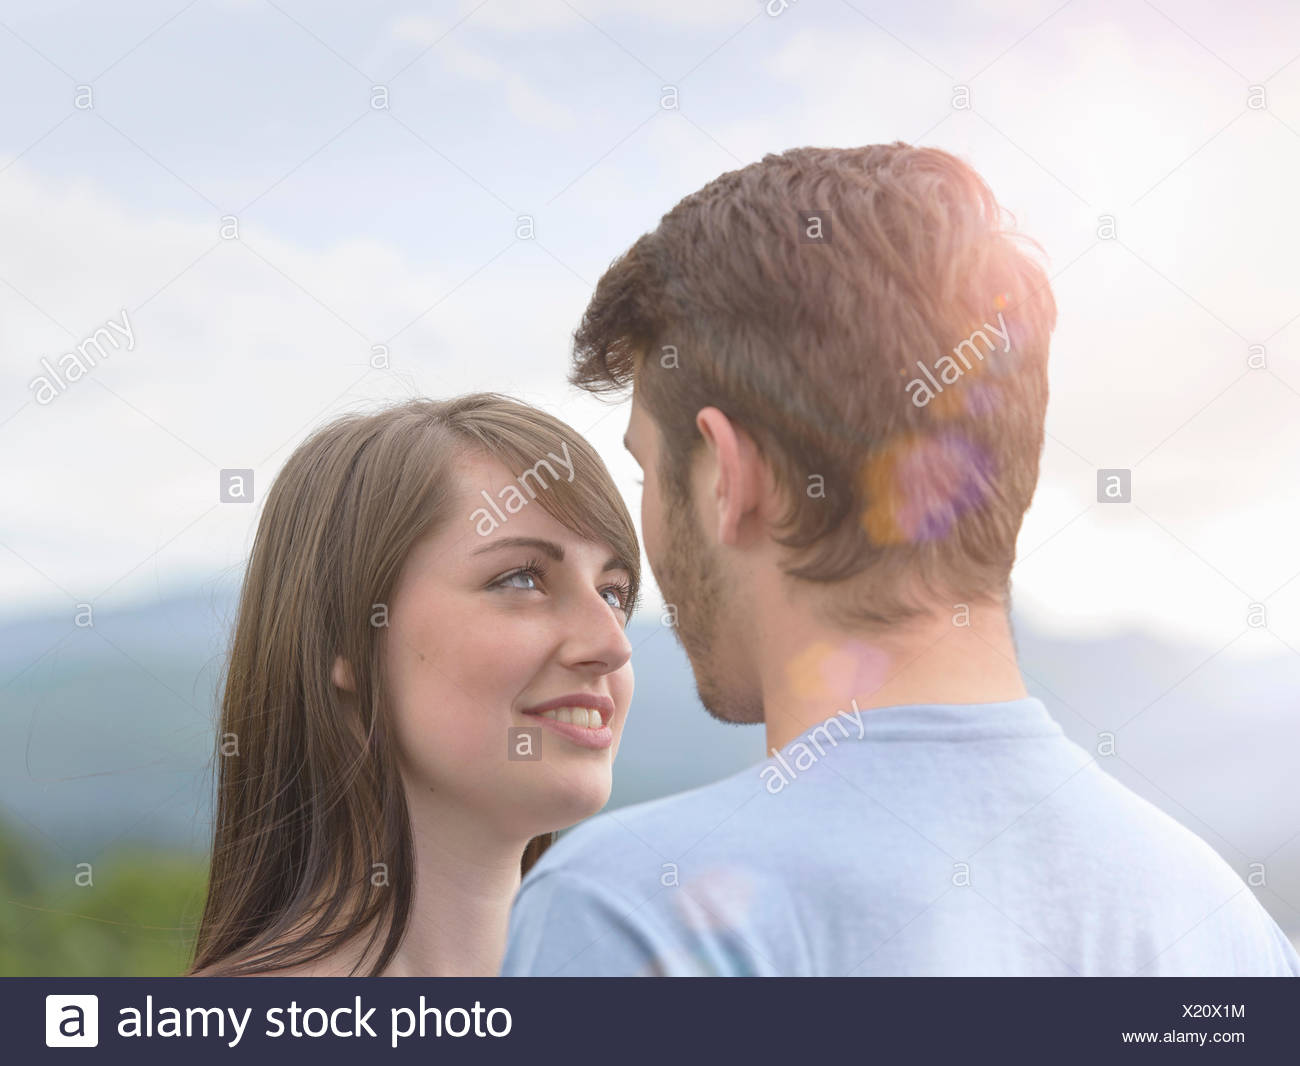 Young couple face to face under bright sunny sky - Stock Image